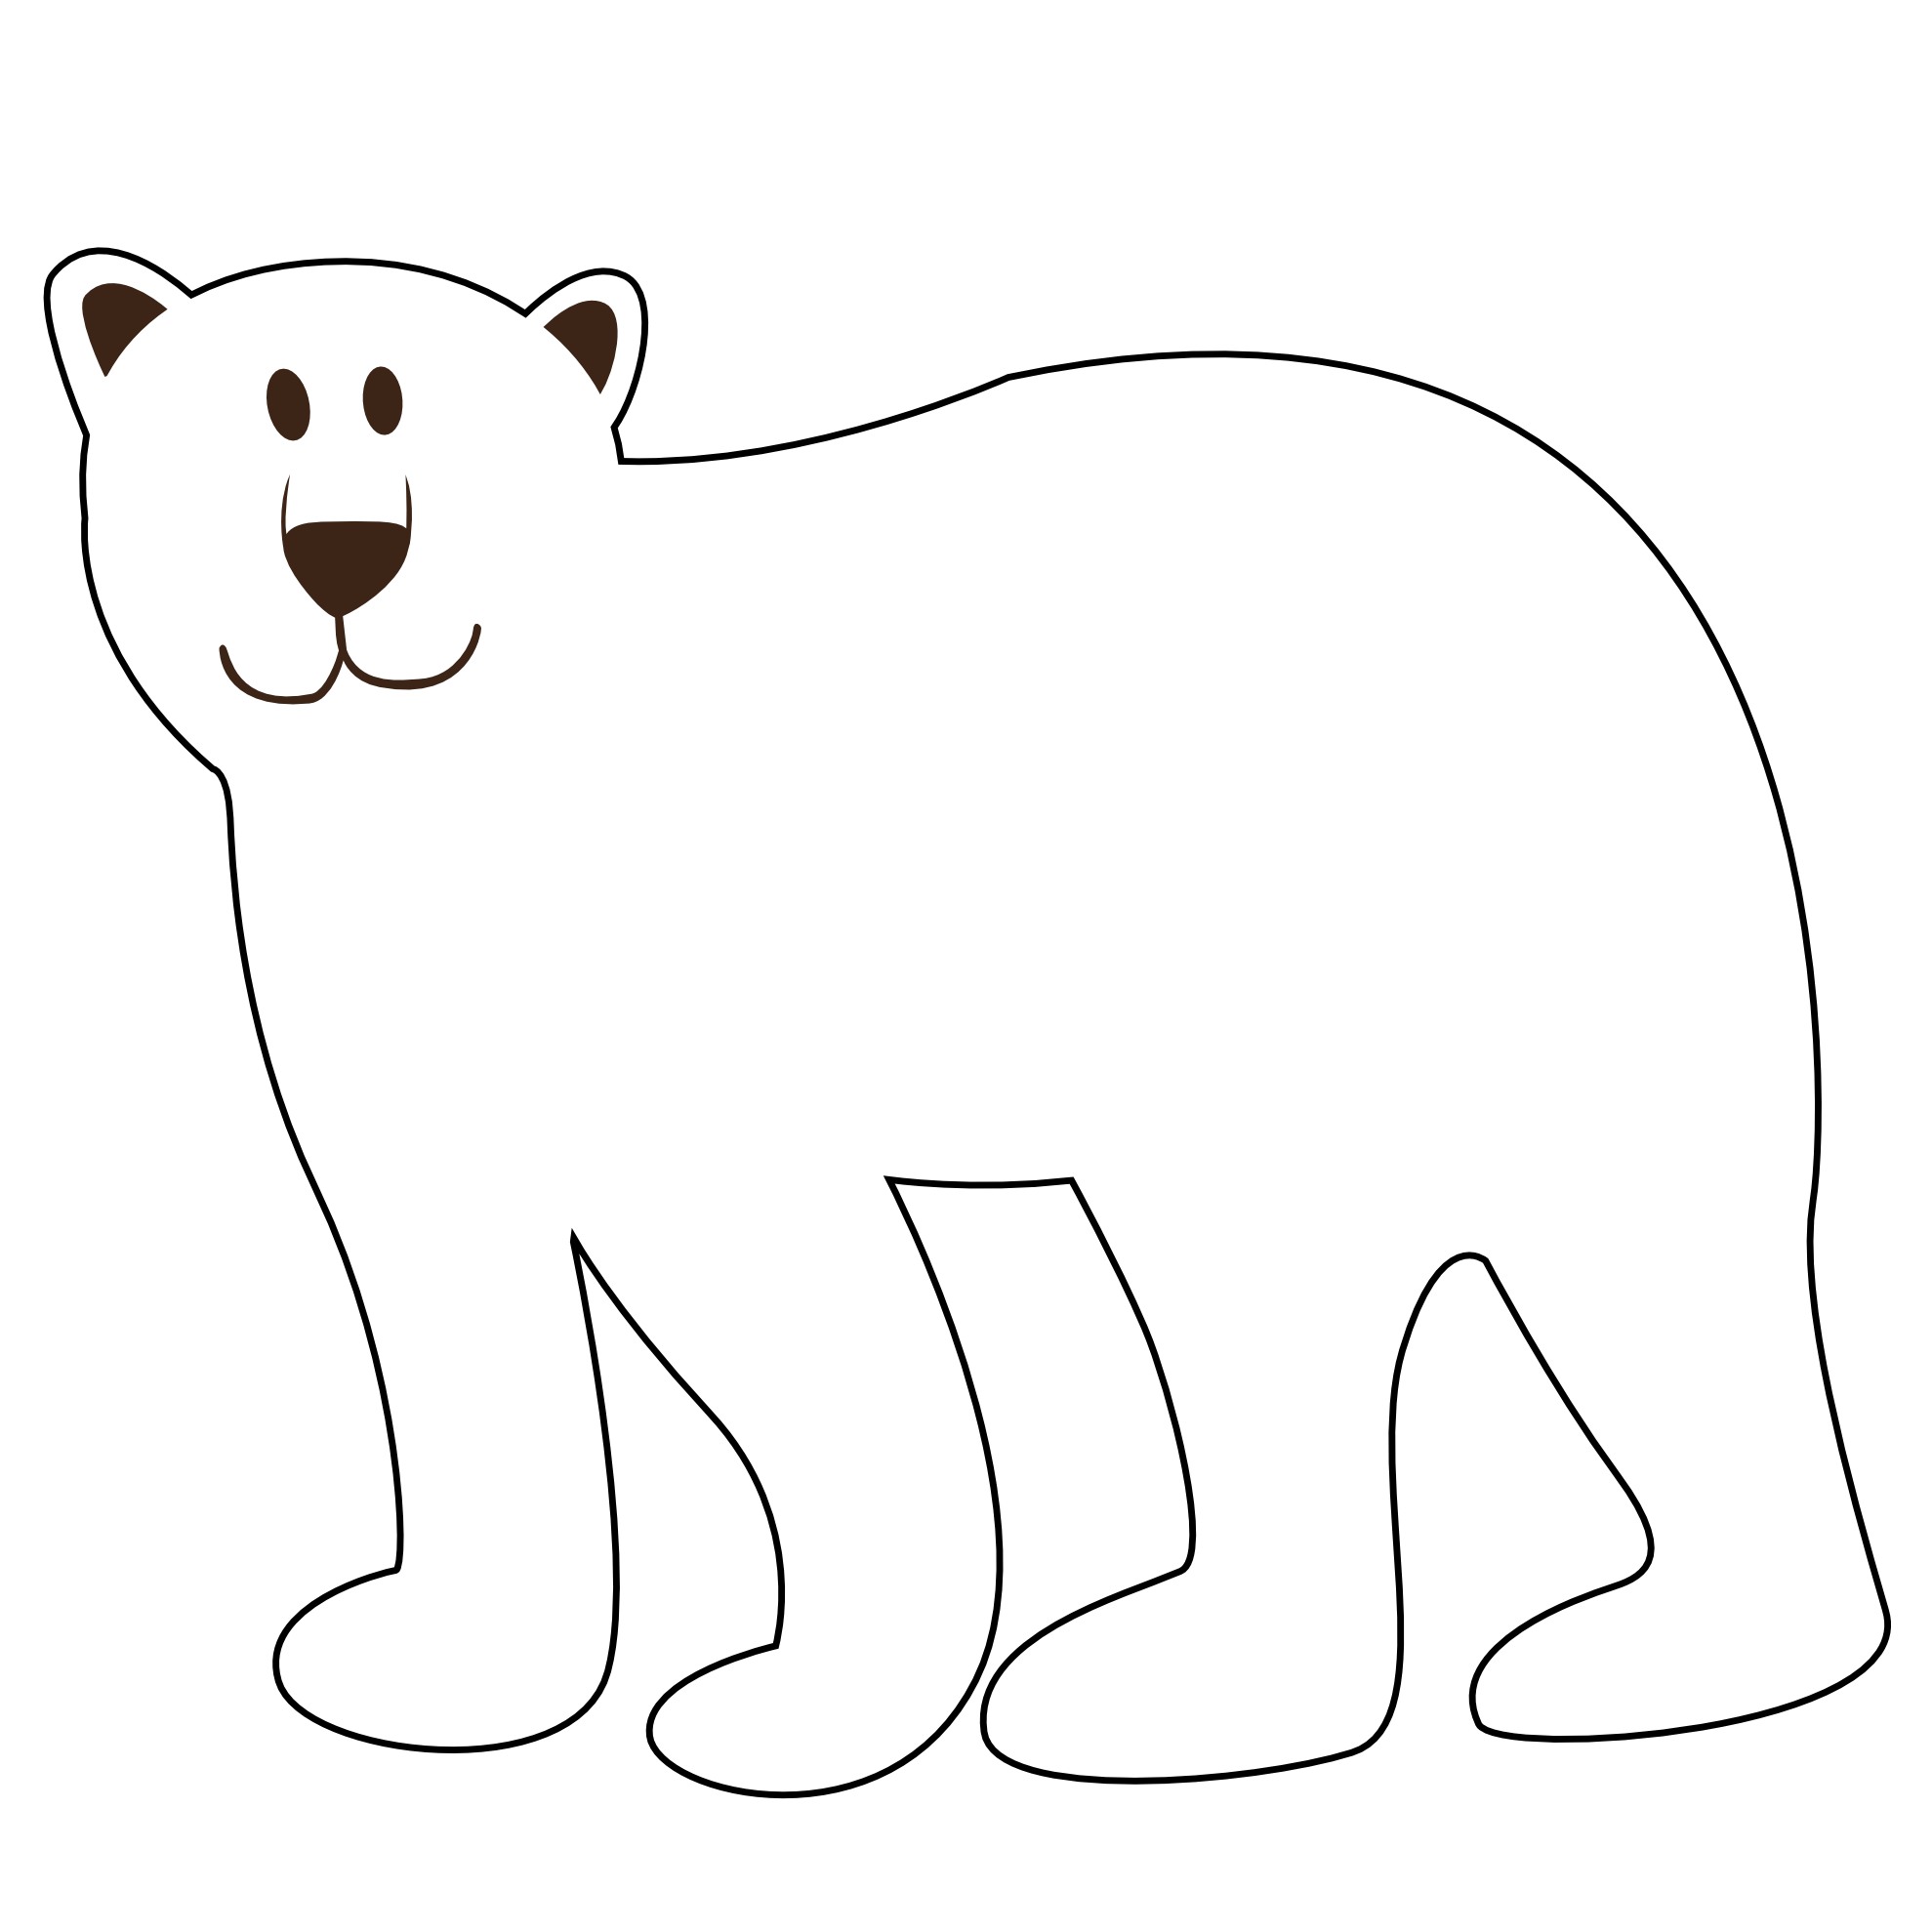 Talking polar bear clipart clipart freeuse download Free Polar Bear Clipart, Download Free Clip Art, Free Clip ... clipart freeuse download